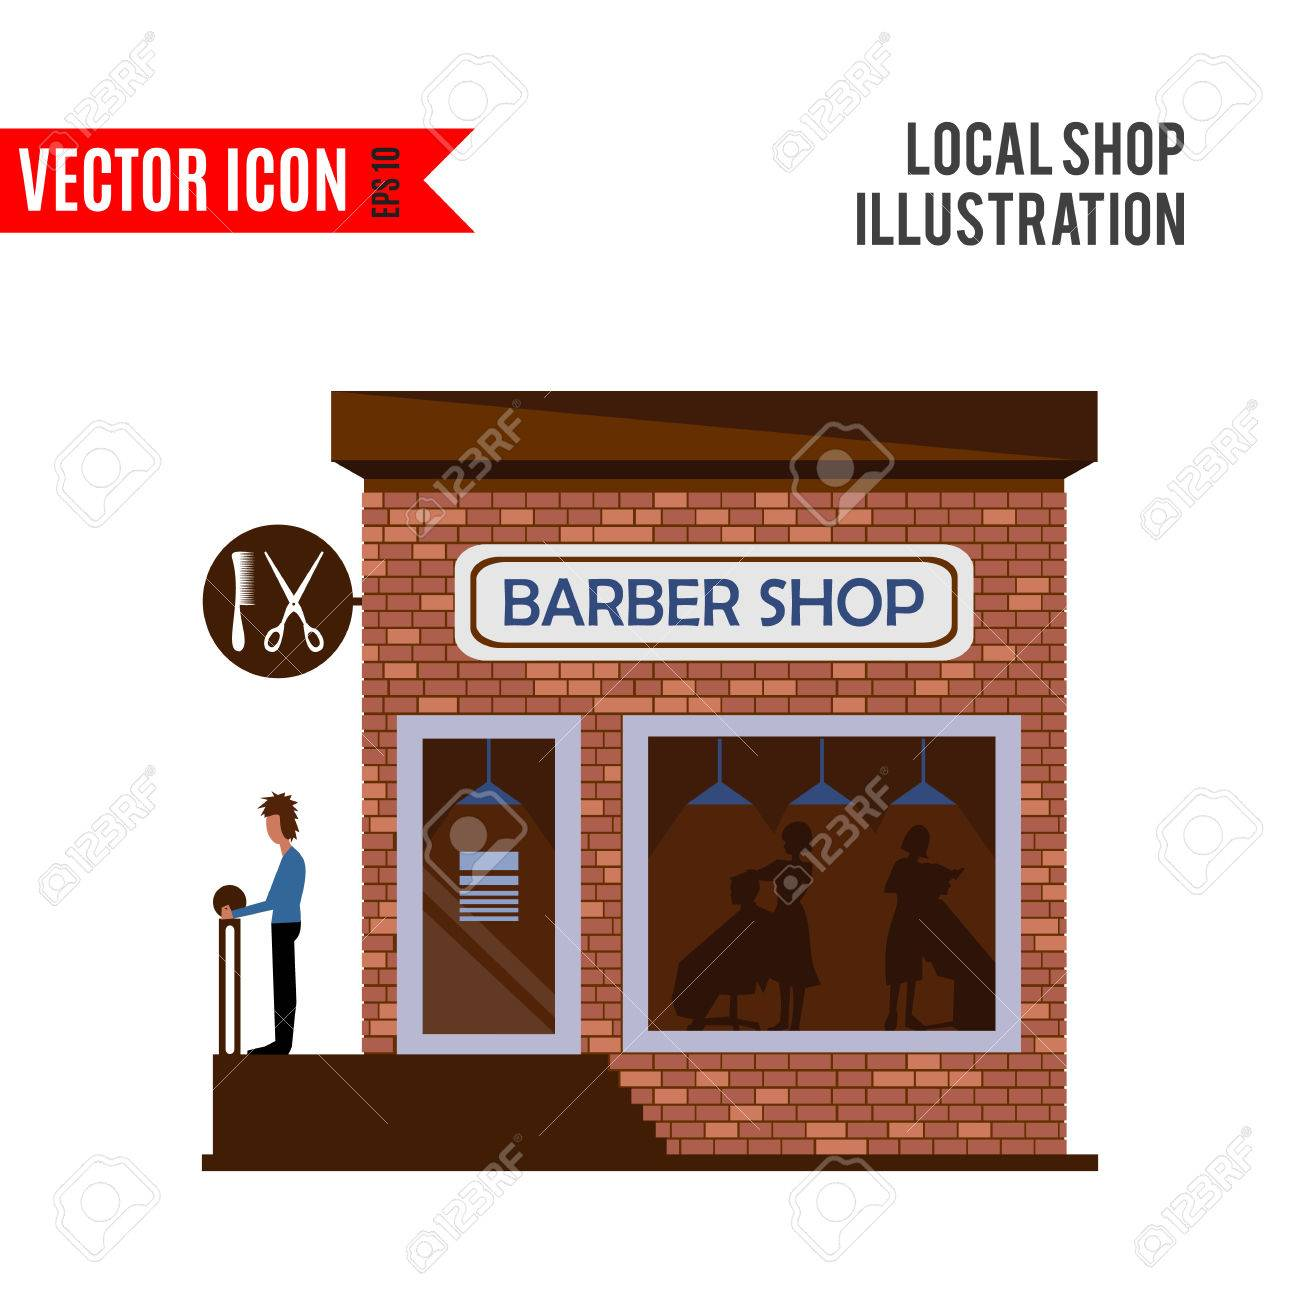 Hair salon chair isolated stock photos illustrations and vector art - Barber Shop Icon Isolated On White Background Vector Illustration For Hair Design Retail Store